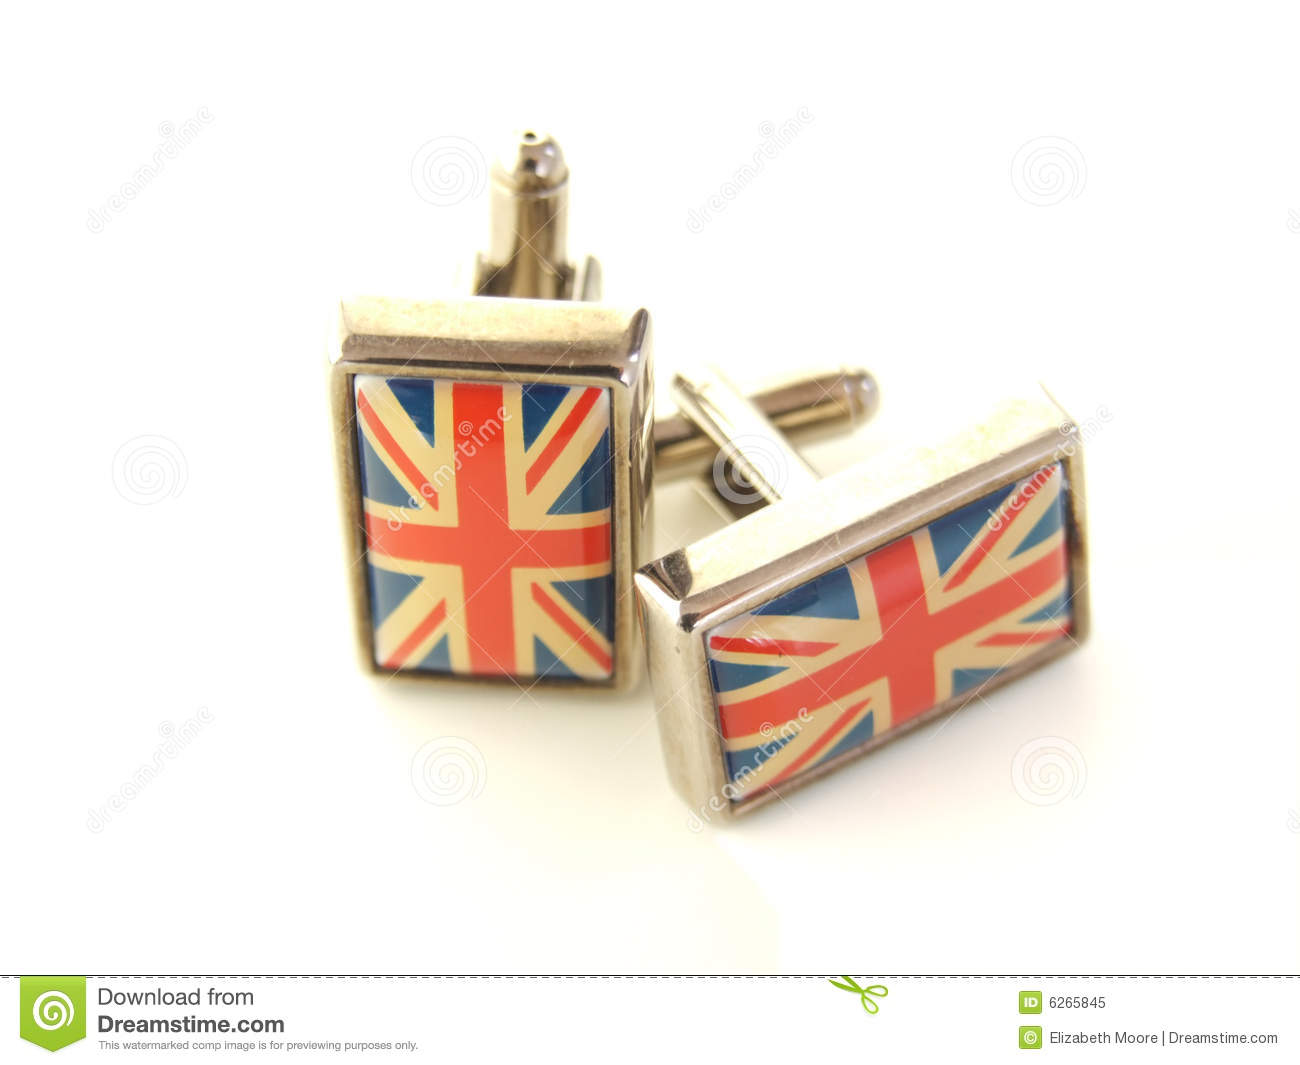 Jack Link's Stock http://www.dreamstime.com/royalty-free-stock-photo-union-jack-cuff-links-image6265845